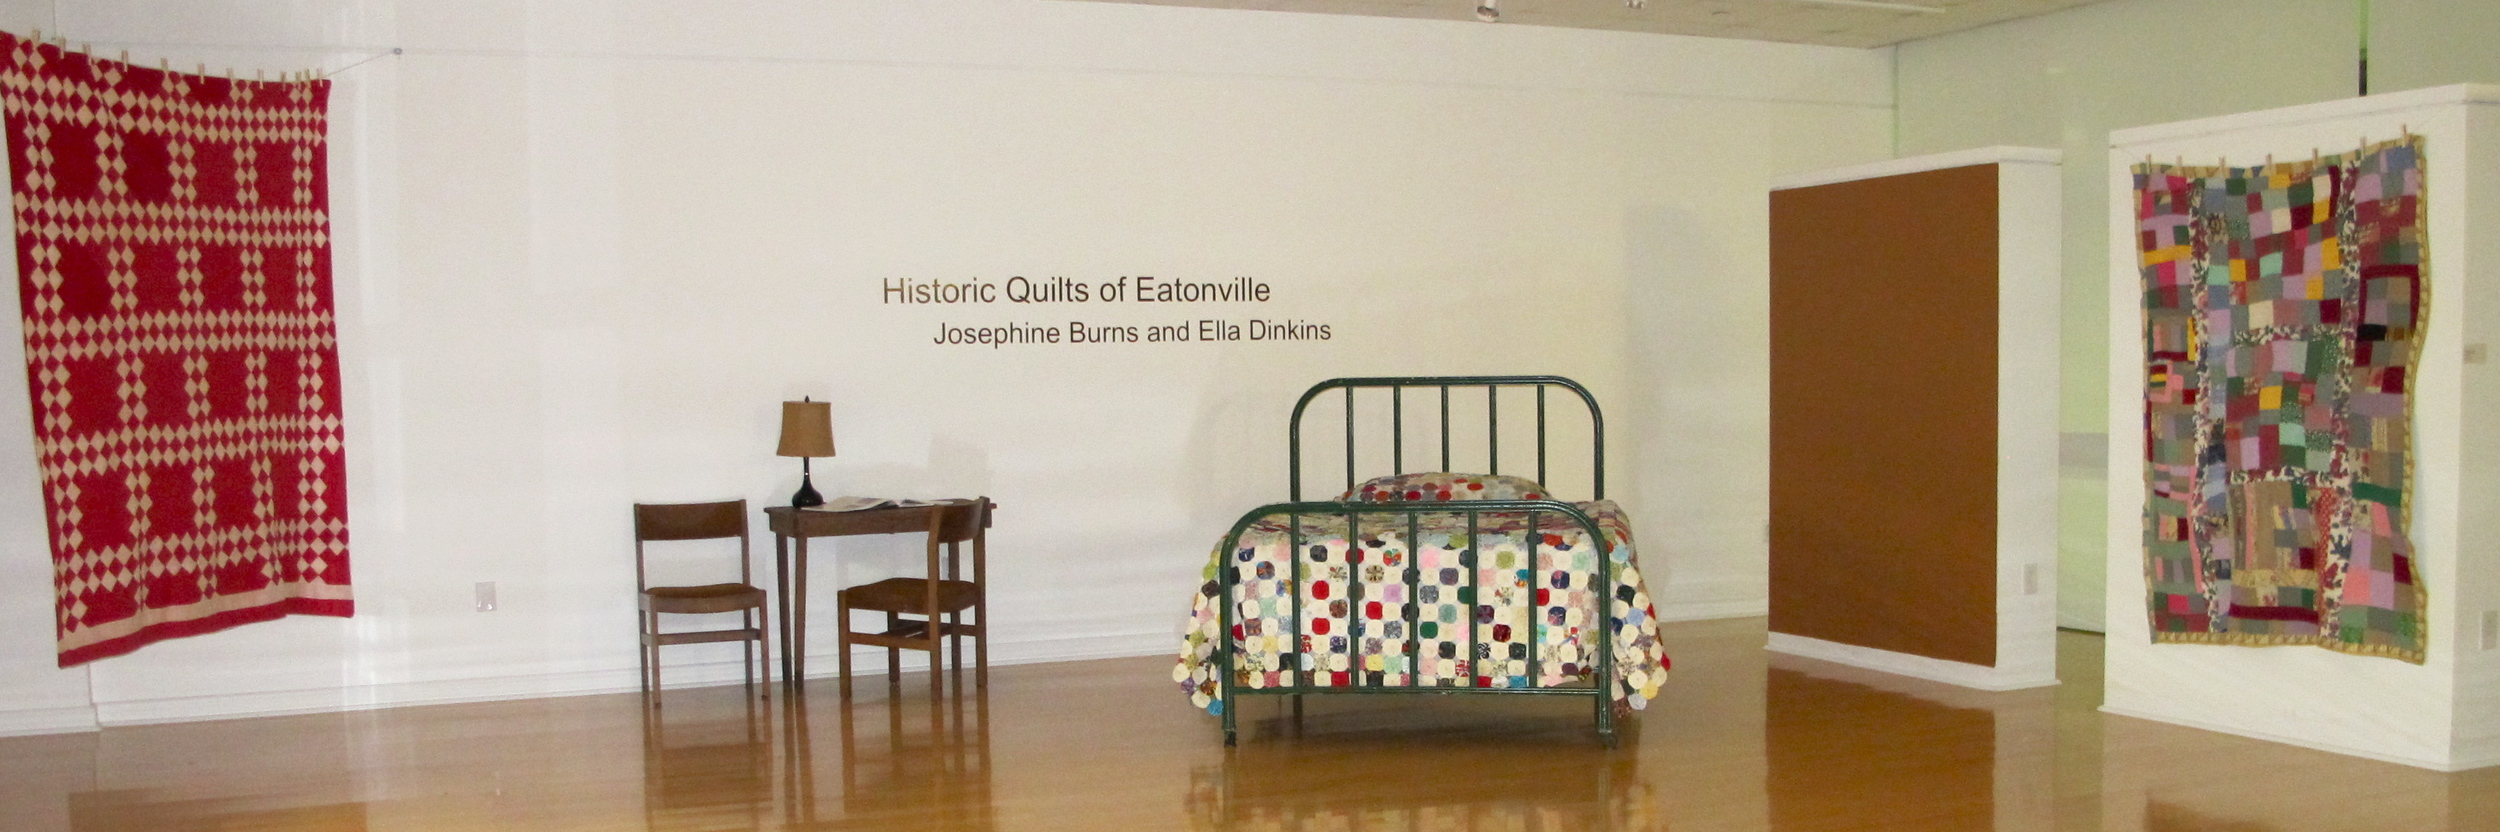 "Above the Fray ,  Historic Quilts of Eatonville  | Hand-stitched Quilts by Josephine Burns and Ella Dinkins   Below right  | works by Stacy Rosende in  subSURFACE;  additional view featured on HOME page.   Below left  |  Sacred Folk  as curated in Gallery 221@HCC; colorful painting by Lila Graves; chair and portraits by Butch Anthony   Esther Hammer | Tampa Tribune  ""Called 'Sacred Folk,' the exhibit presents more than 50 pieces of folk art by 20 Southeastern folk artists [on loan from Jeanine Taylor Folk Art]...  'Jeanine and I have been doing this for about 10 years,' says Gibson. 'In 2002 we jointly hosted an exhibit at the former Matthews Art Gallery in Tampa. There was a tremendous response to it and we realized a lot of people in Tampa had an interest in folk art… I repeat artists but never their work so that keeps it fresh for me too.' """